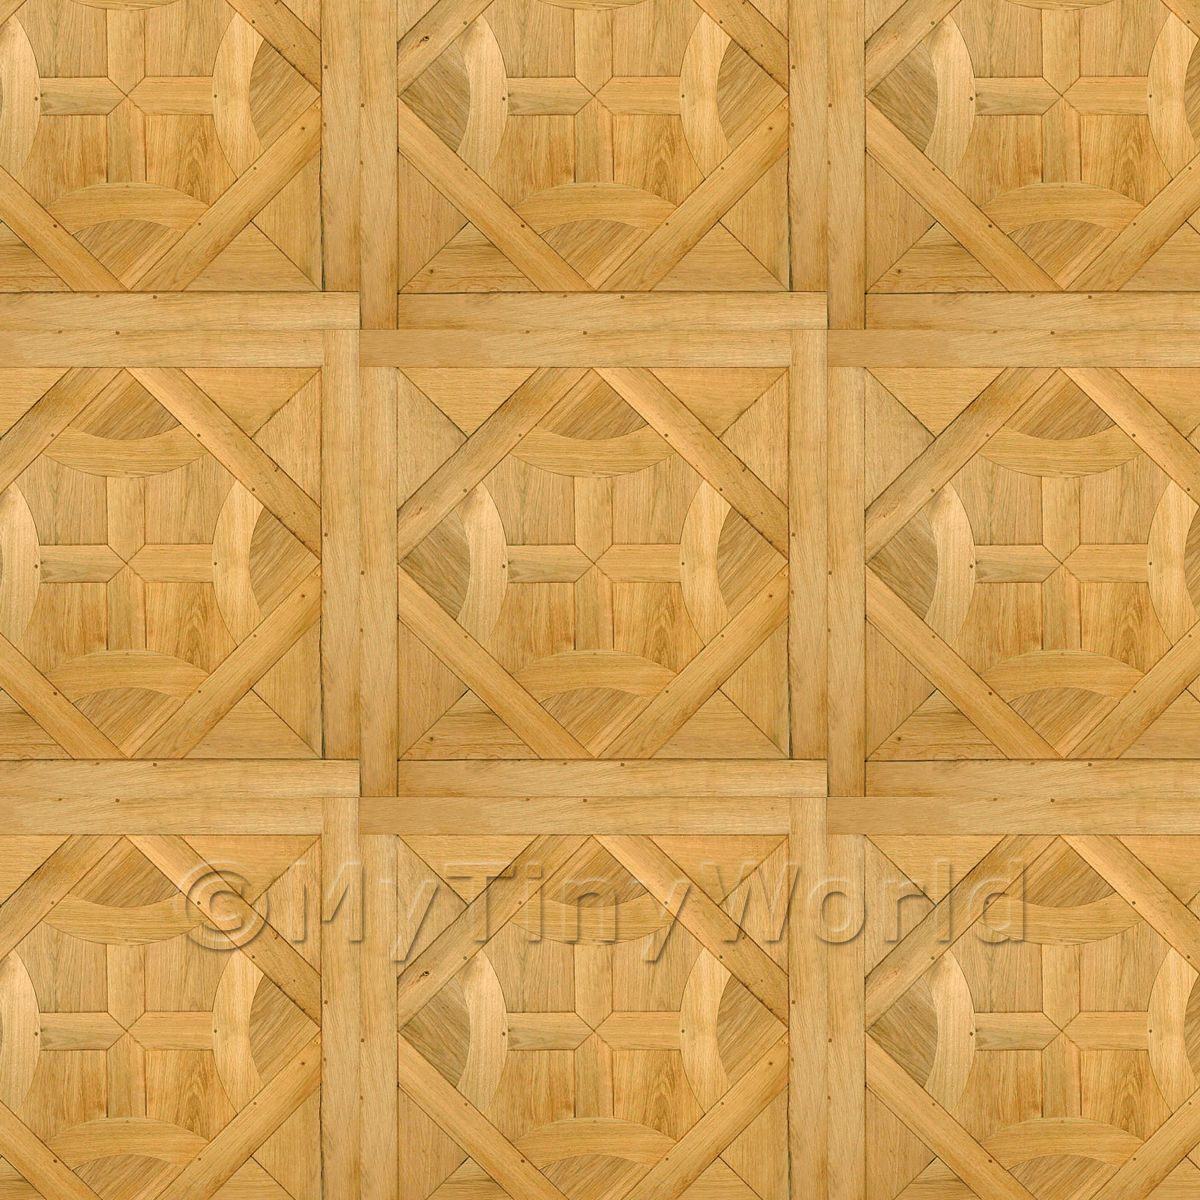 Dolls House Saint Fargeau Large Panel Parquet Wood Effect Flooring